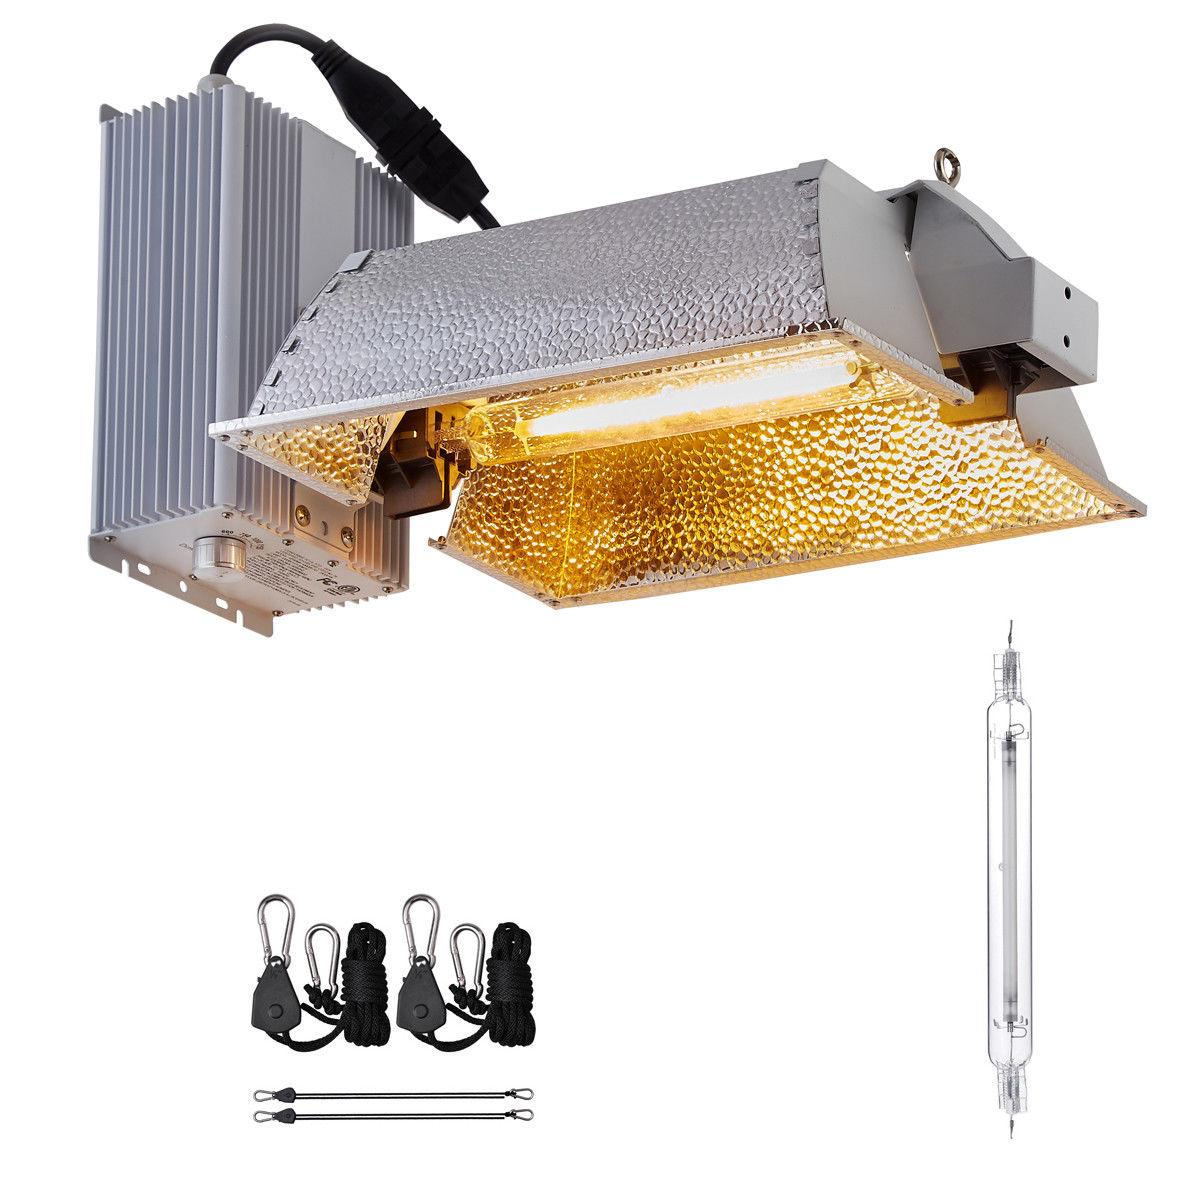 Hydroponic 1000W Ended Fixture kit W/Bulb Indoor Grow